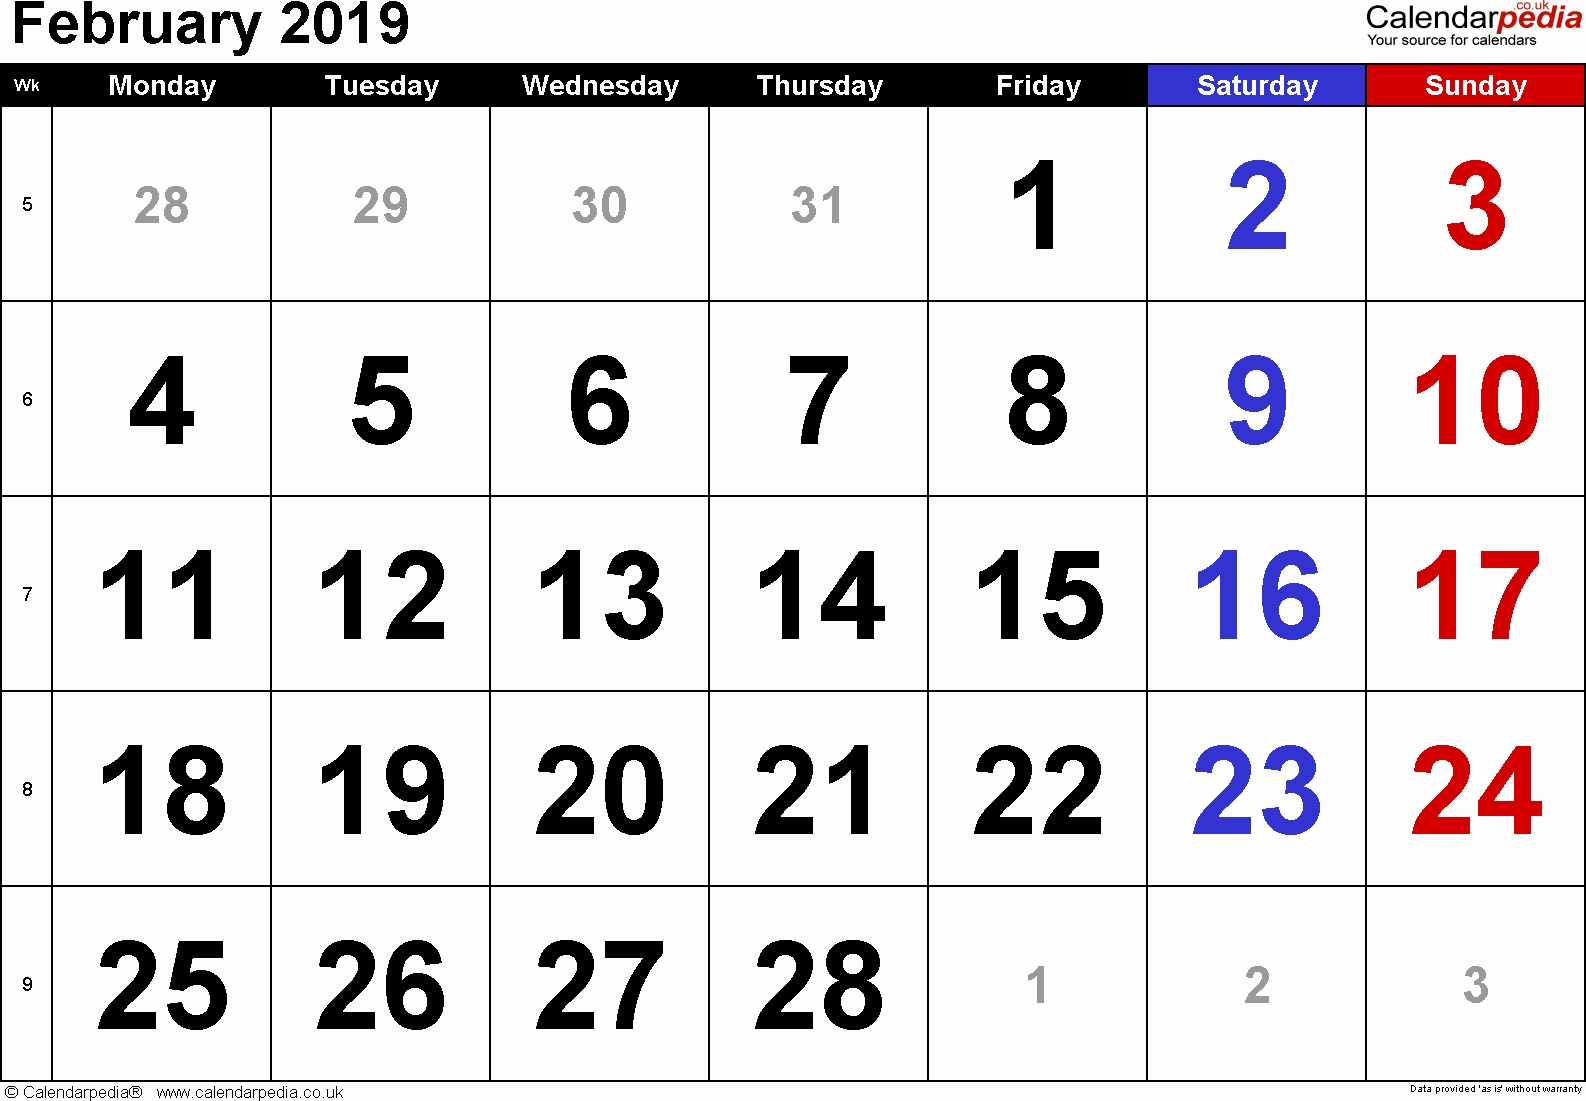 2019 calendar uk excel calendar february 2019 uk bank holidays excel::February 2019 Calendar Word